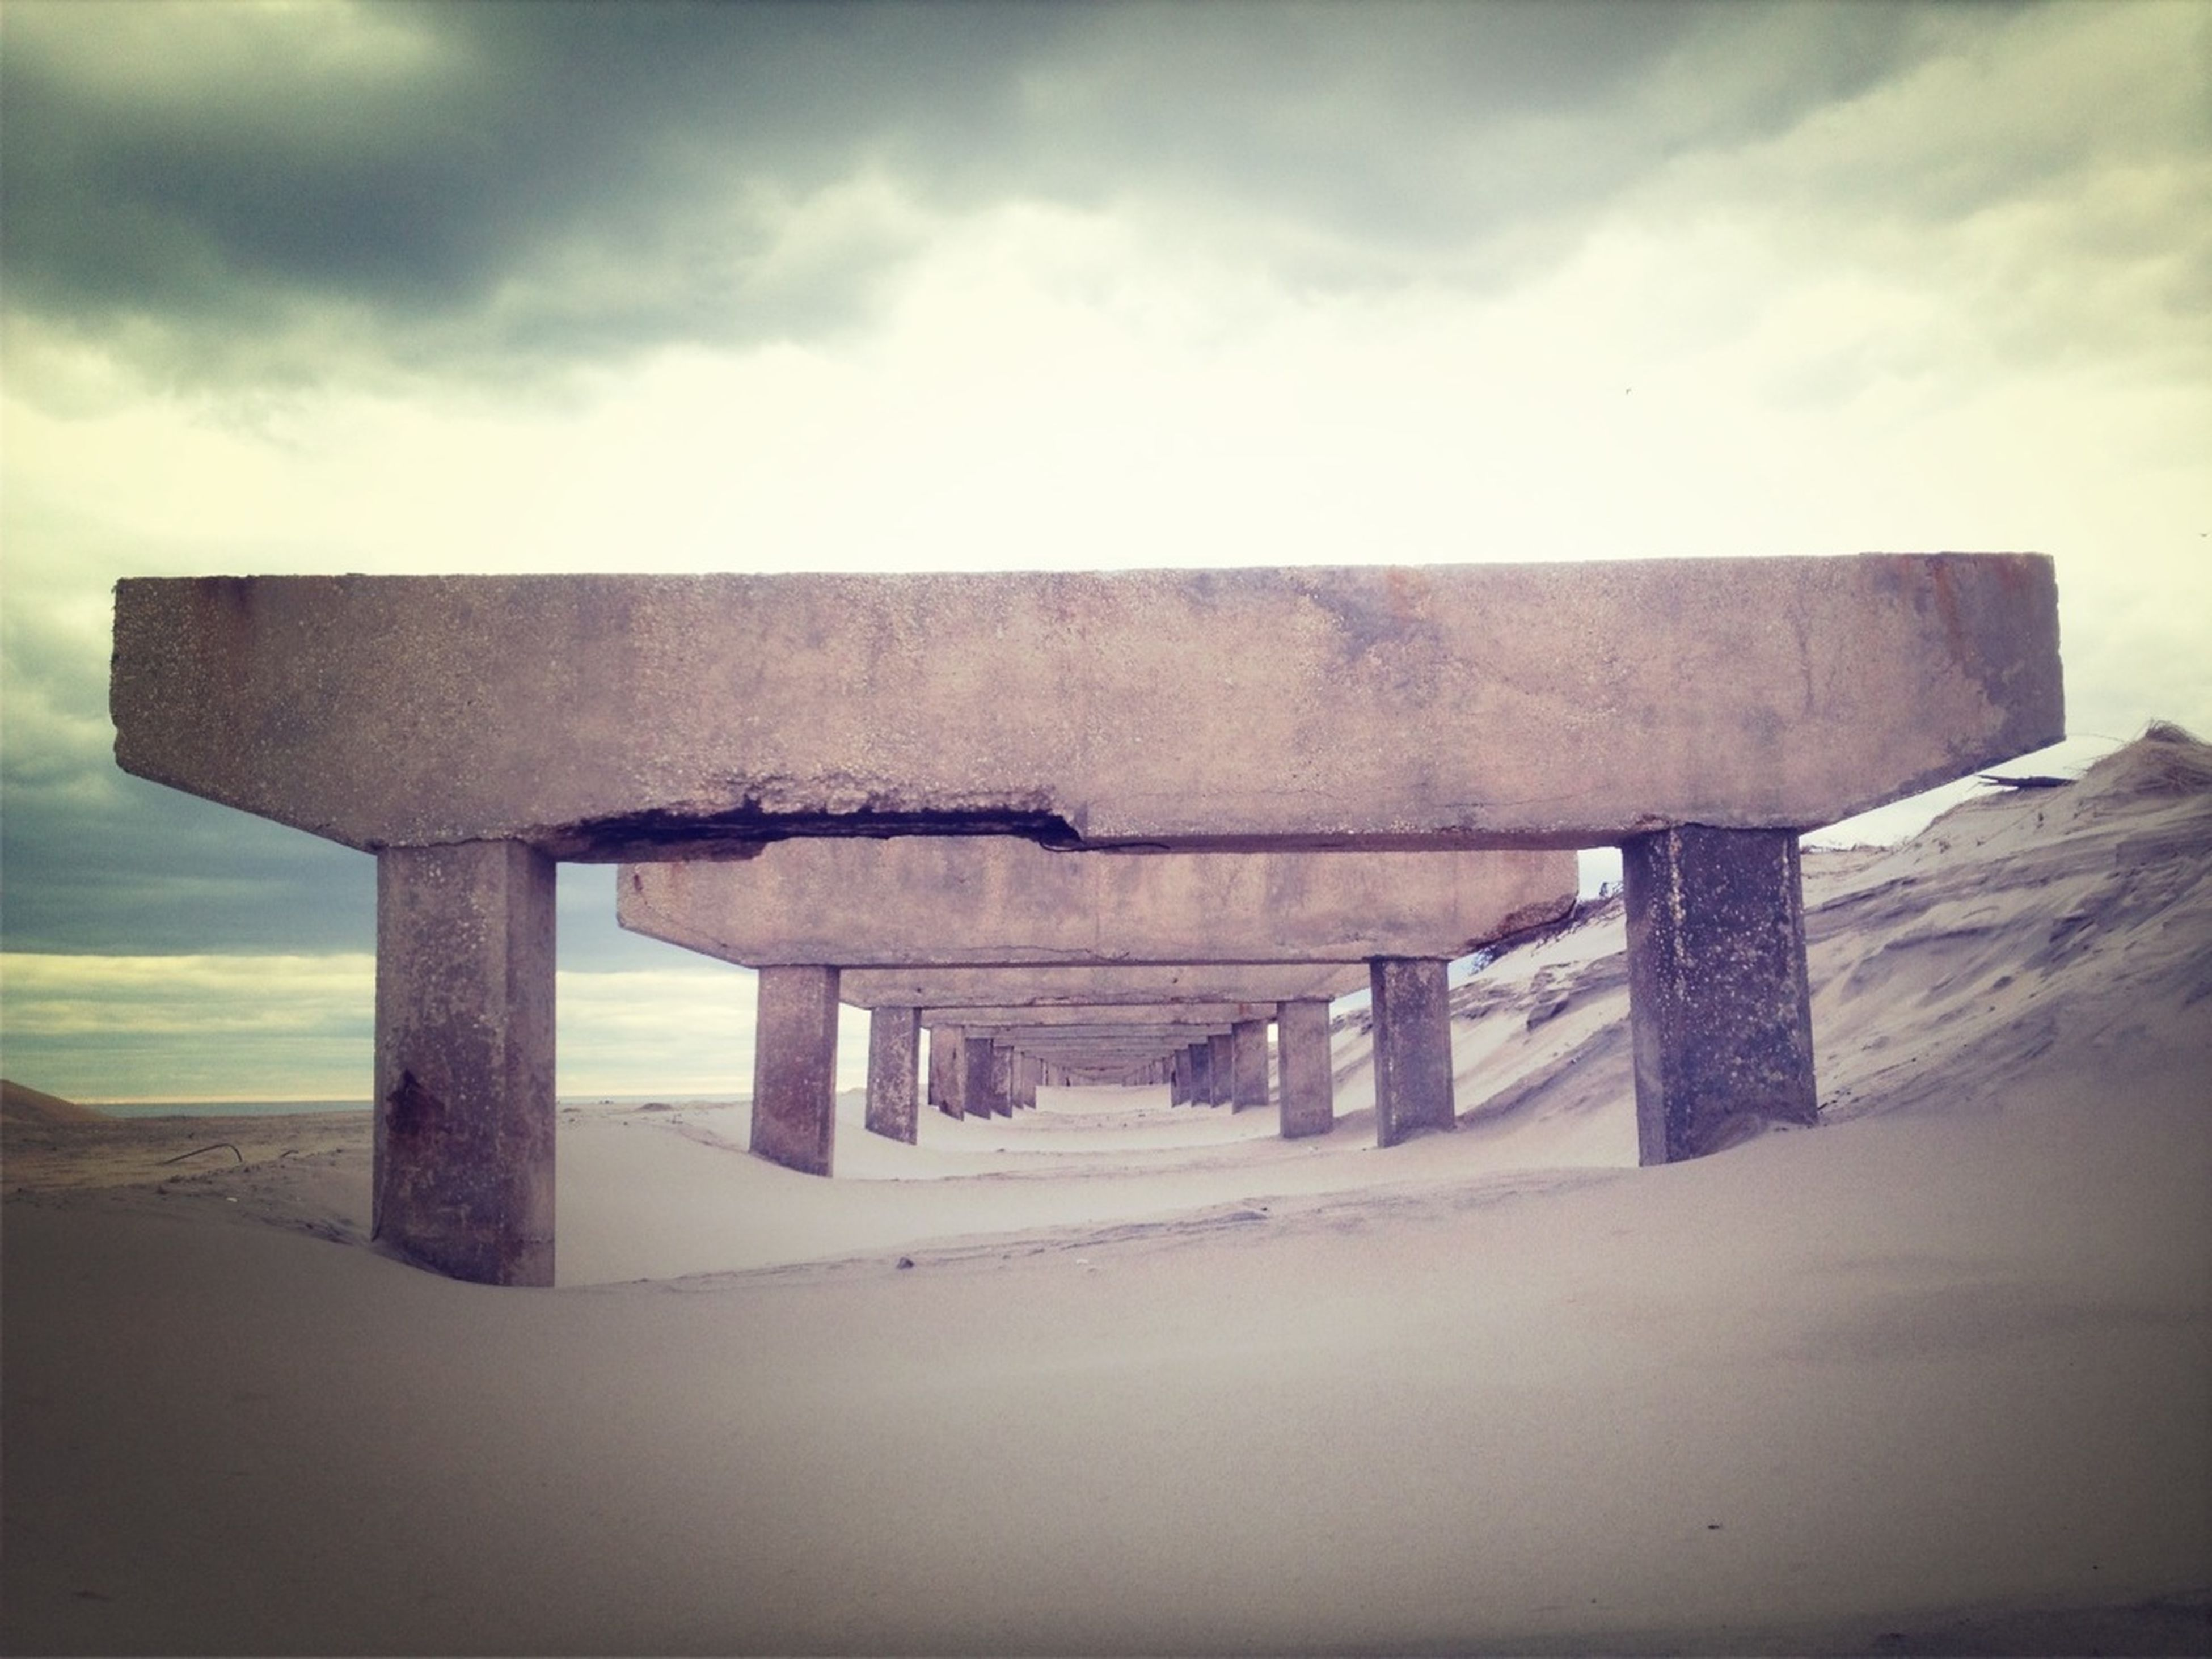 sky, cloud - sky, built structure, architecture, beach, sand, cloudy, sea, cloud, shore, tranquility, water, nature, tranquil scene, scenics, outdoors, horizon over water, day, no people, building exterior